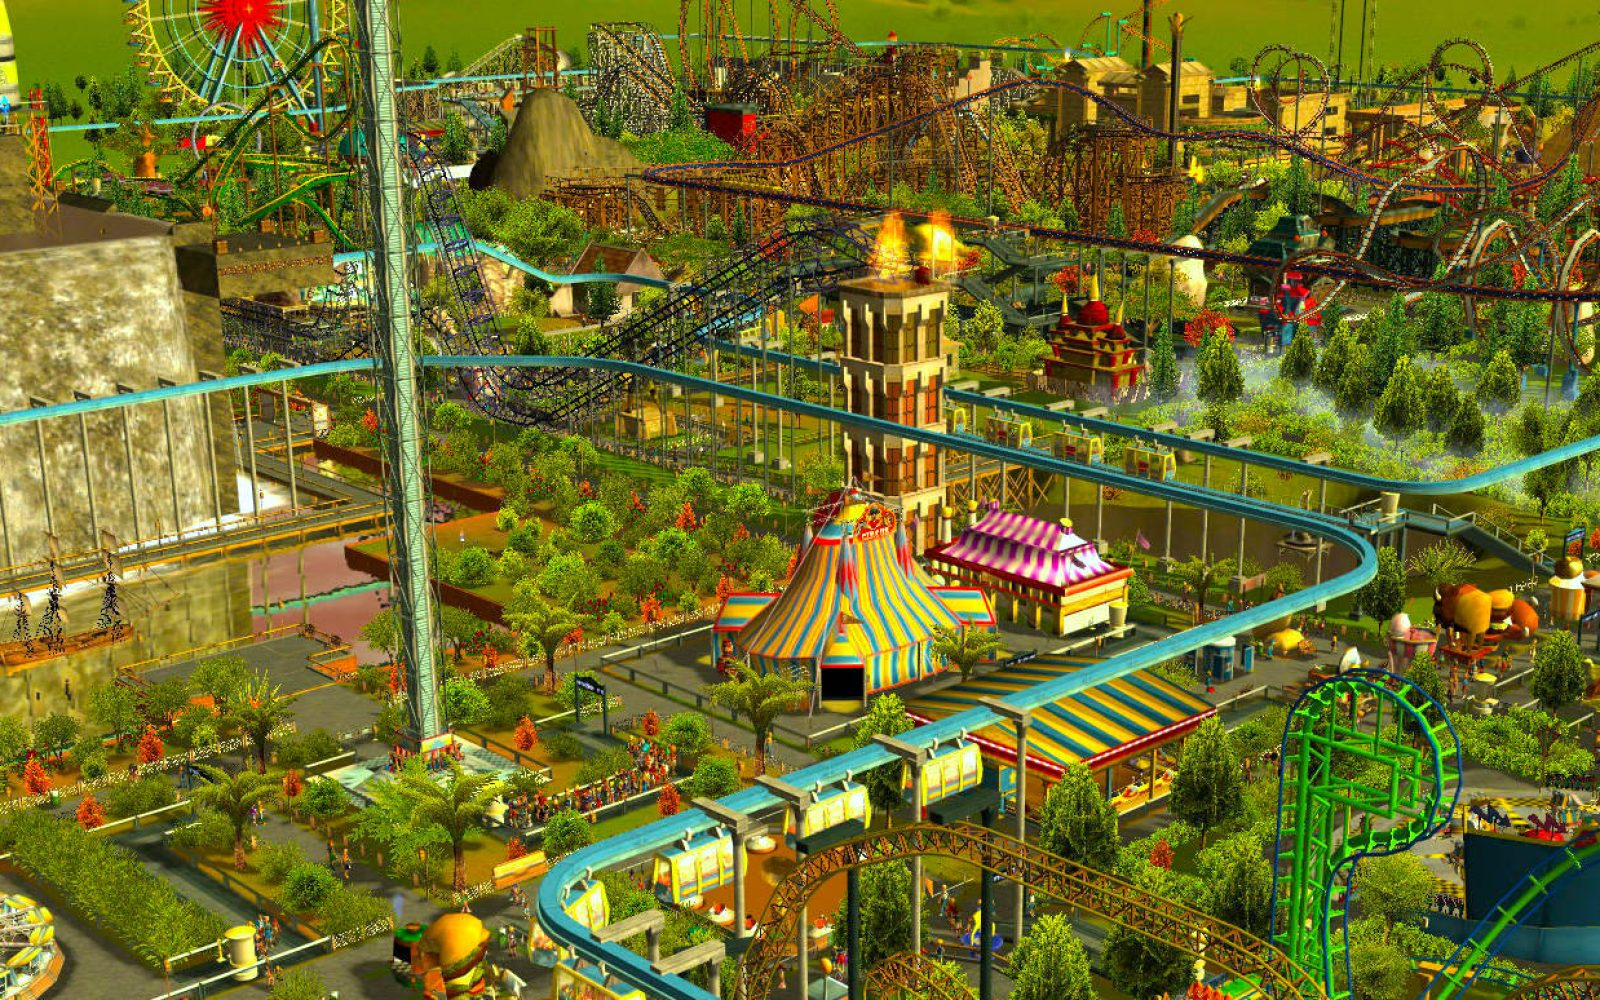 RollerCoaster Tycoon 3 drops to its lowest price ever on the